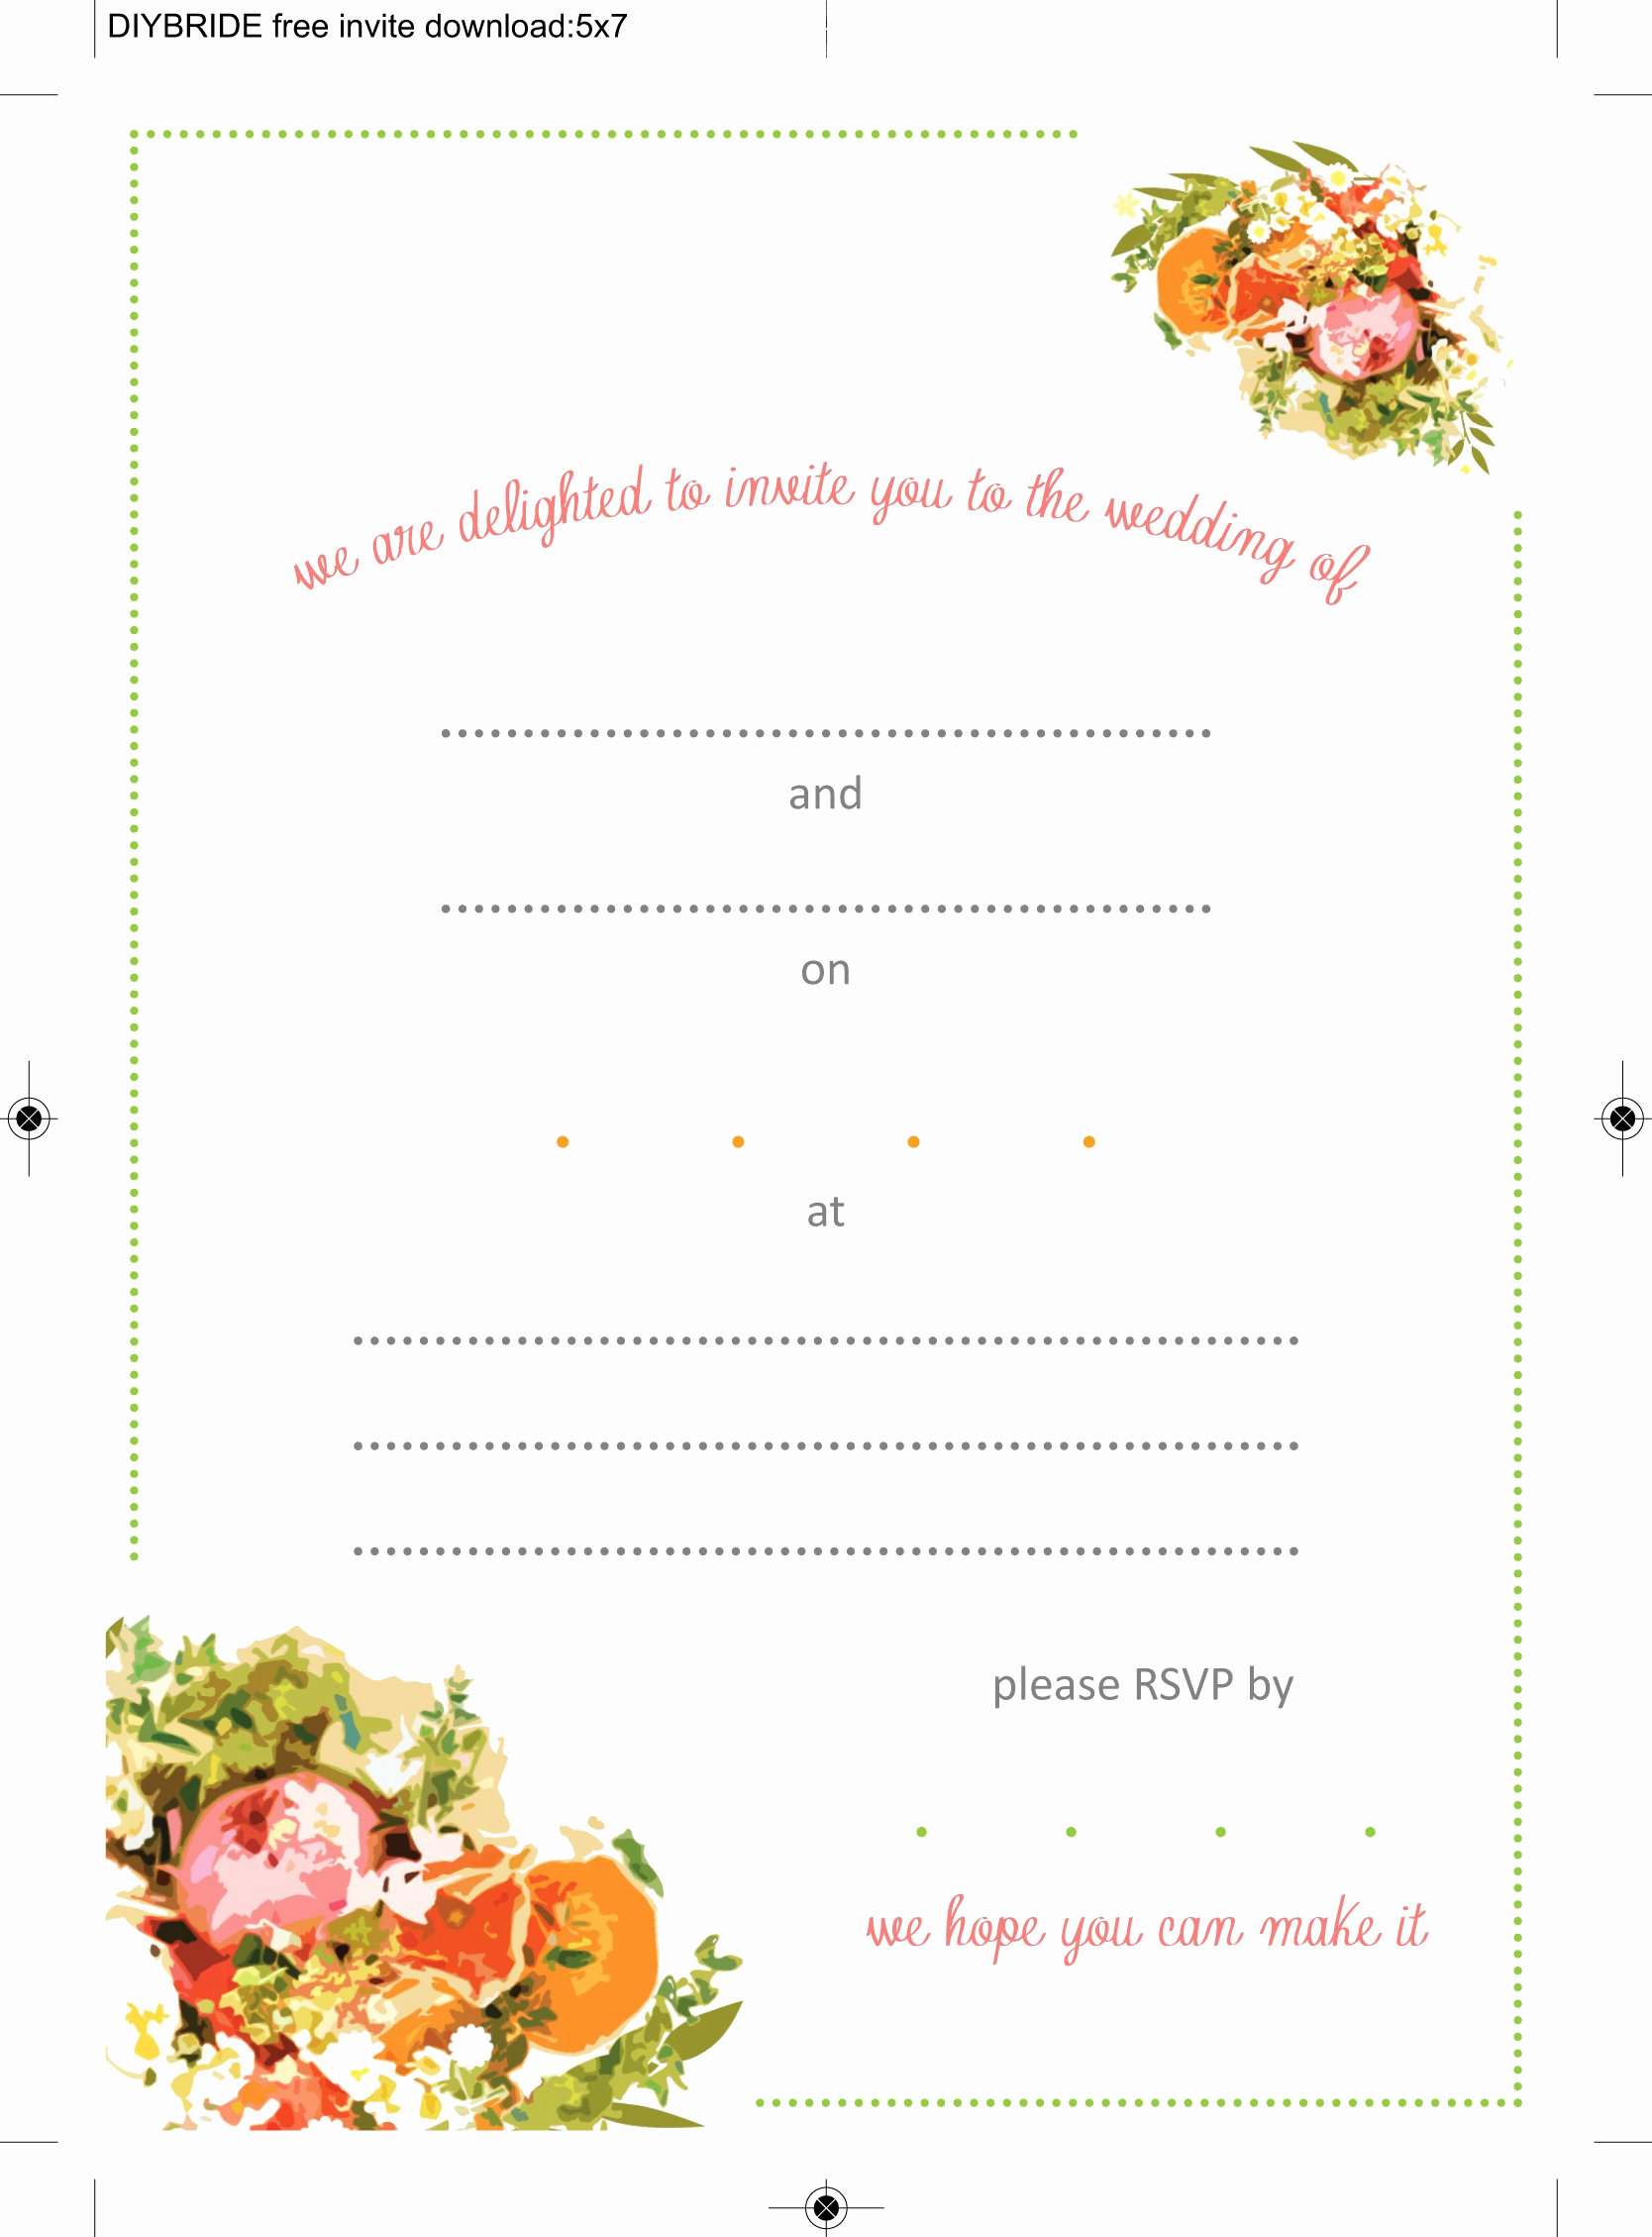 Printable Wedding Invitation Templates Elegant Wedding Invitation Templates that are Cute and Easy to